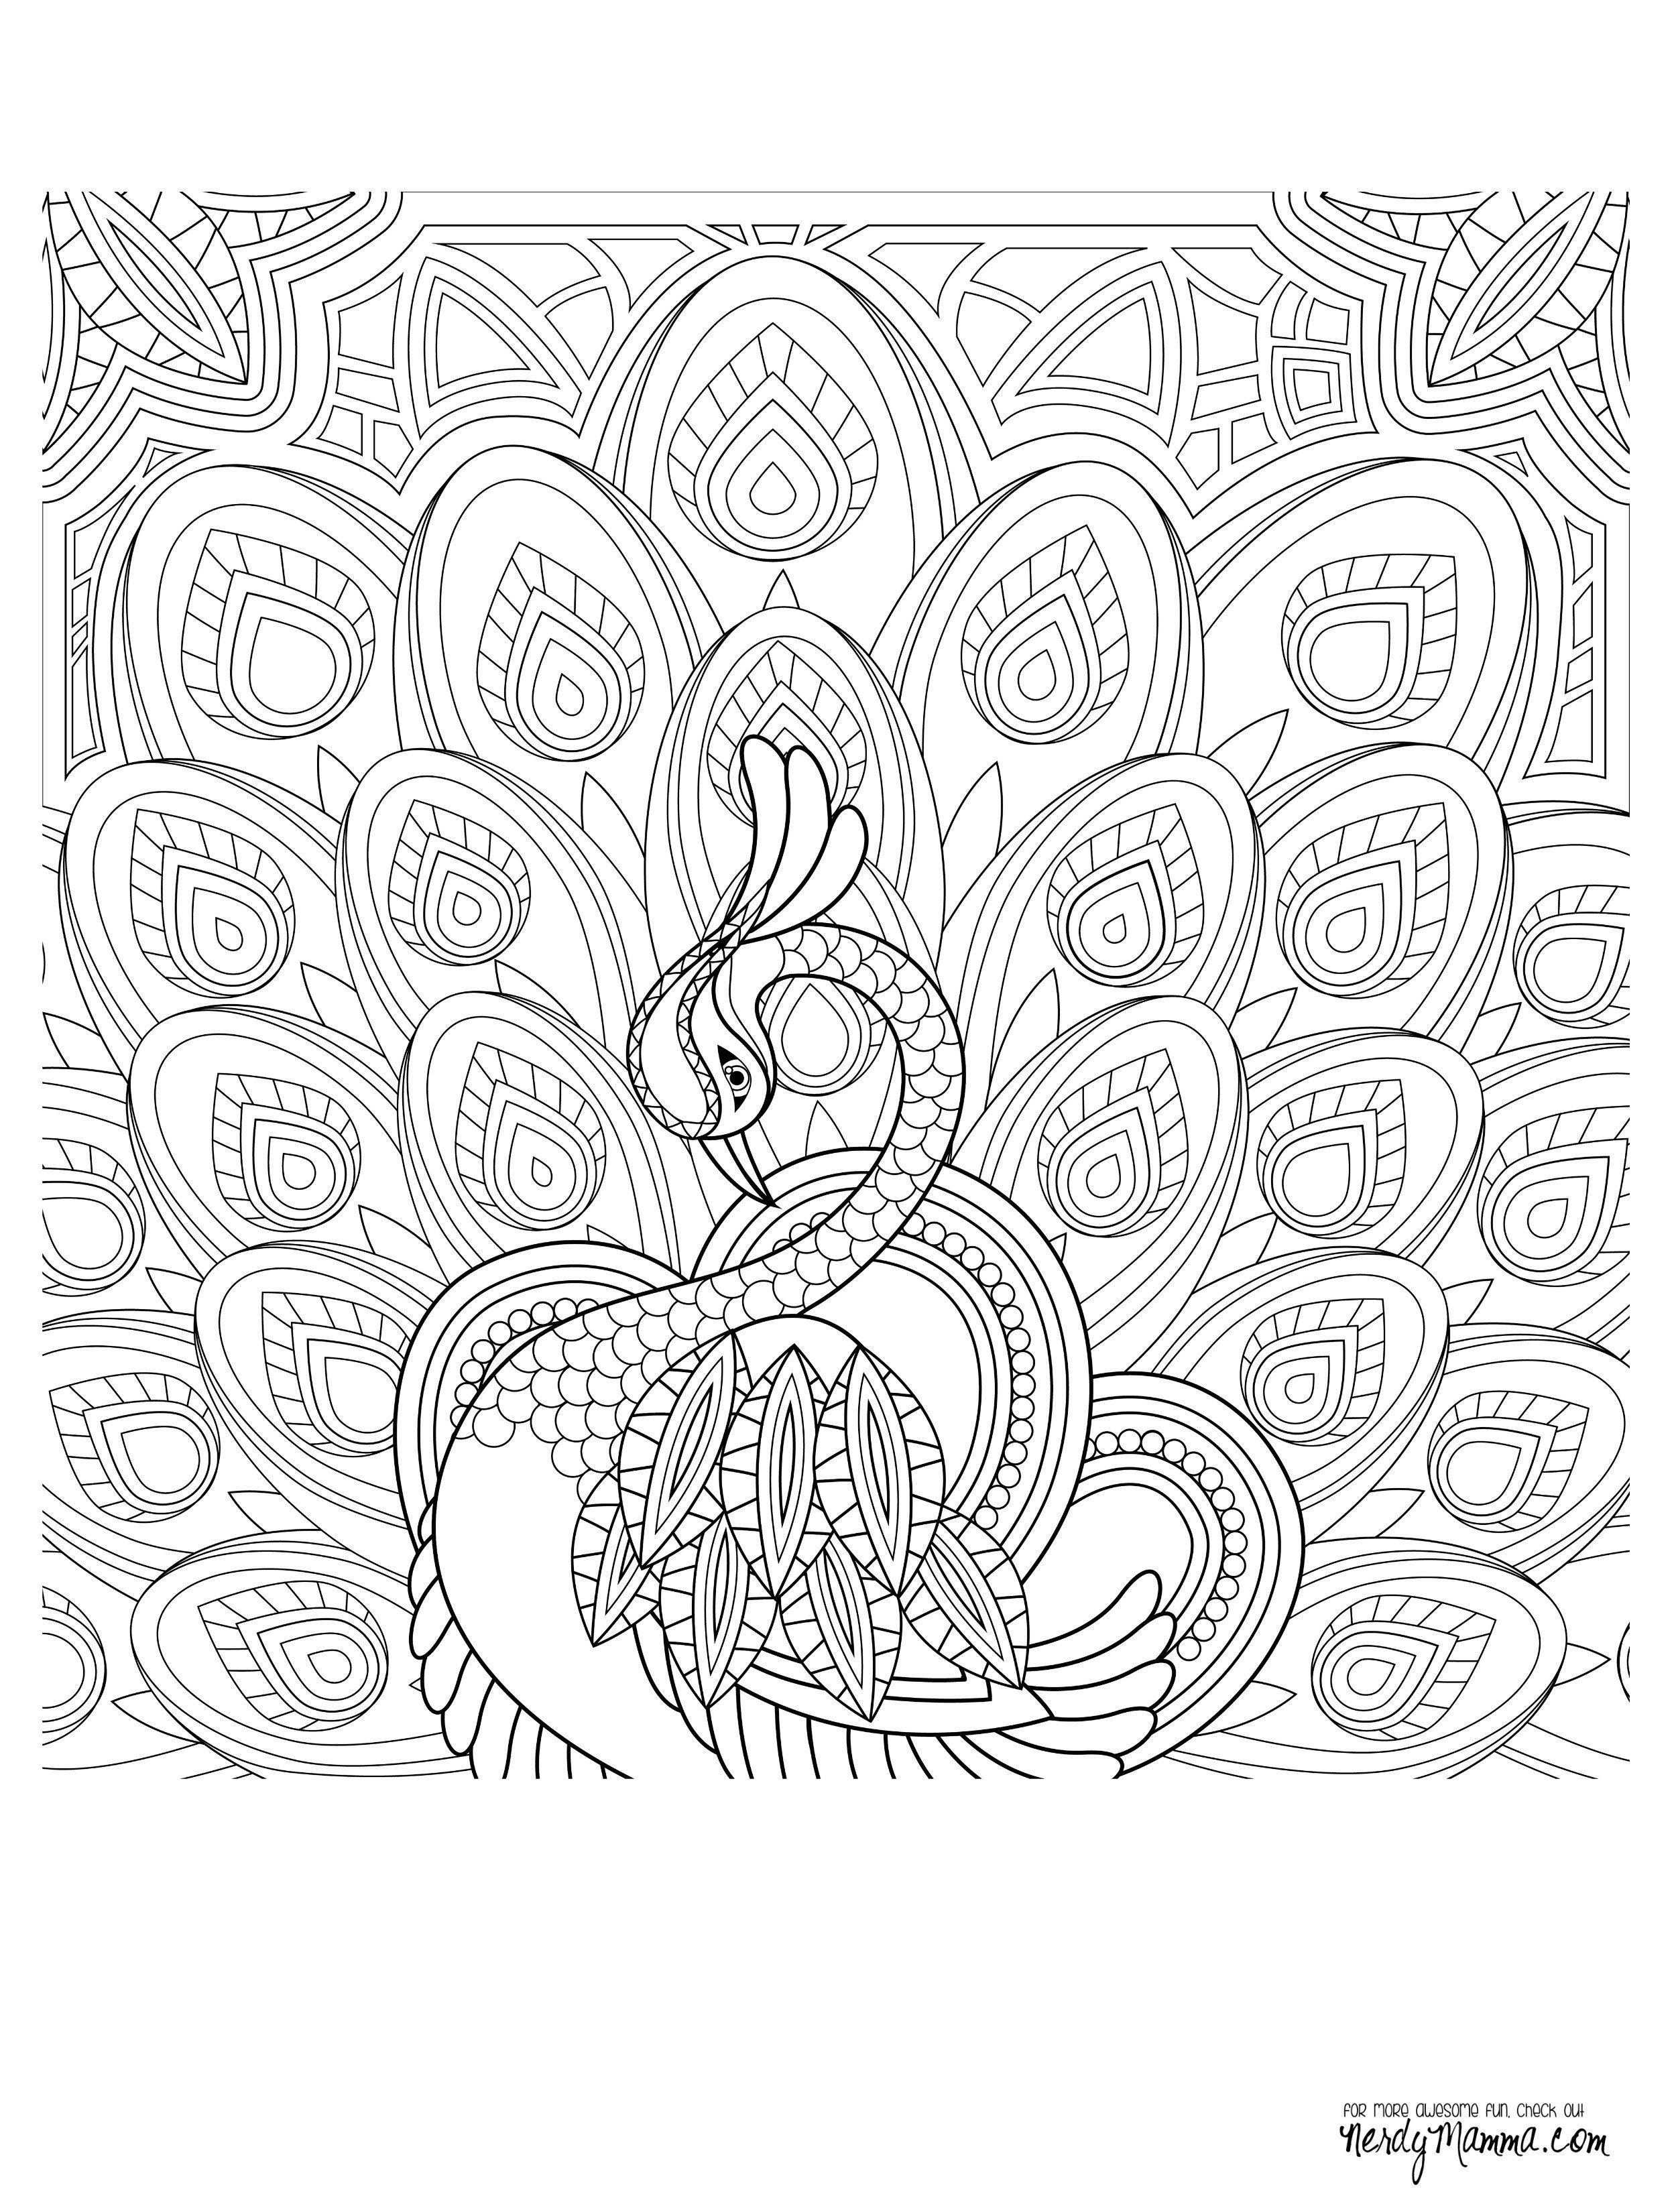 labor day coloring pages Collection-Columbus Coloring Page Colouring In New New Colouring Family C3 82 C2 A0 0d Free Coloring 18-k